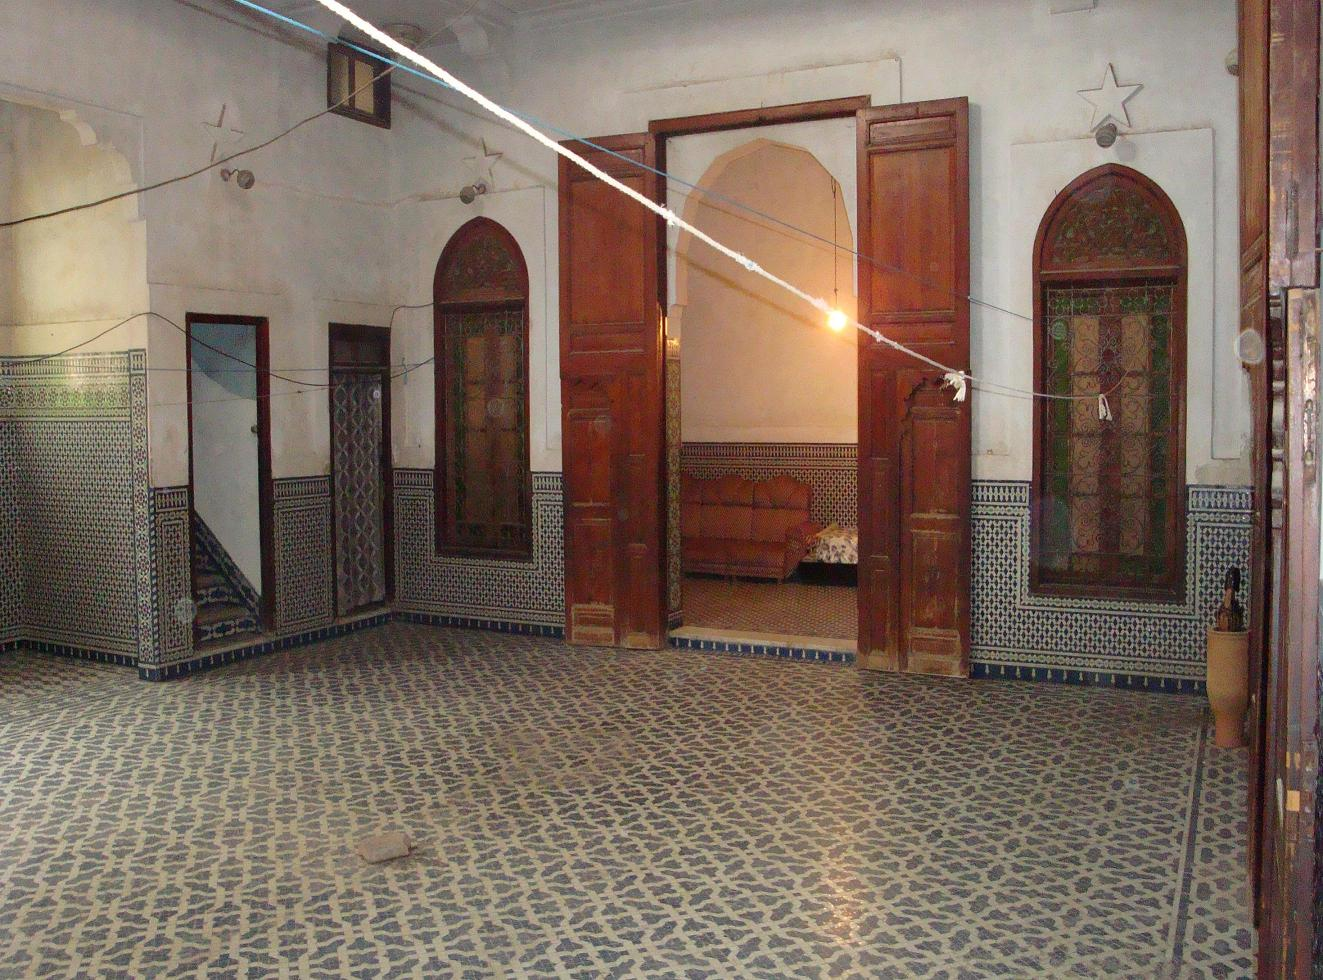 House for Sale in fes 250.000.000 DH